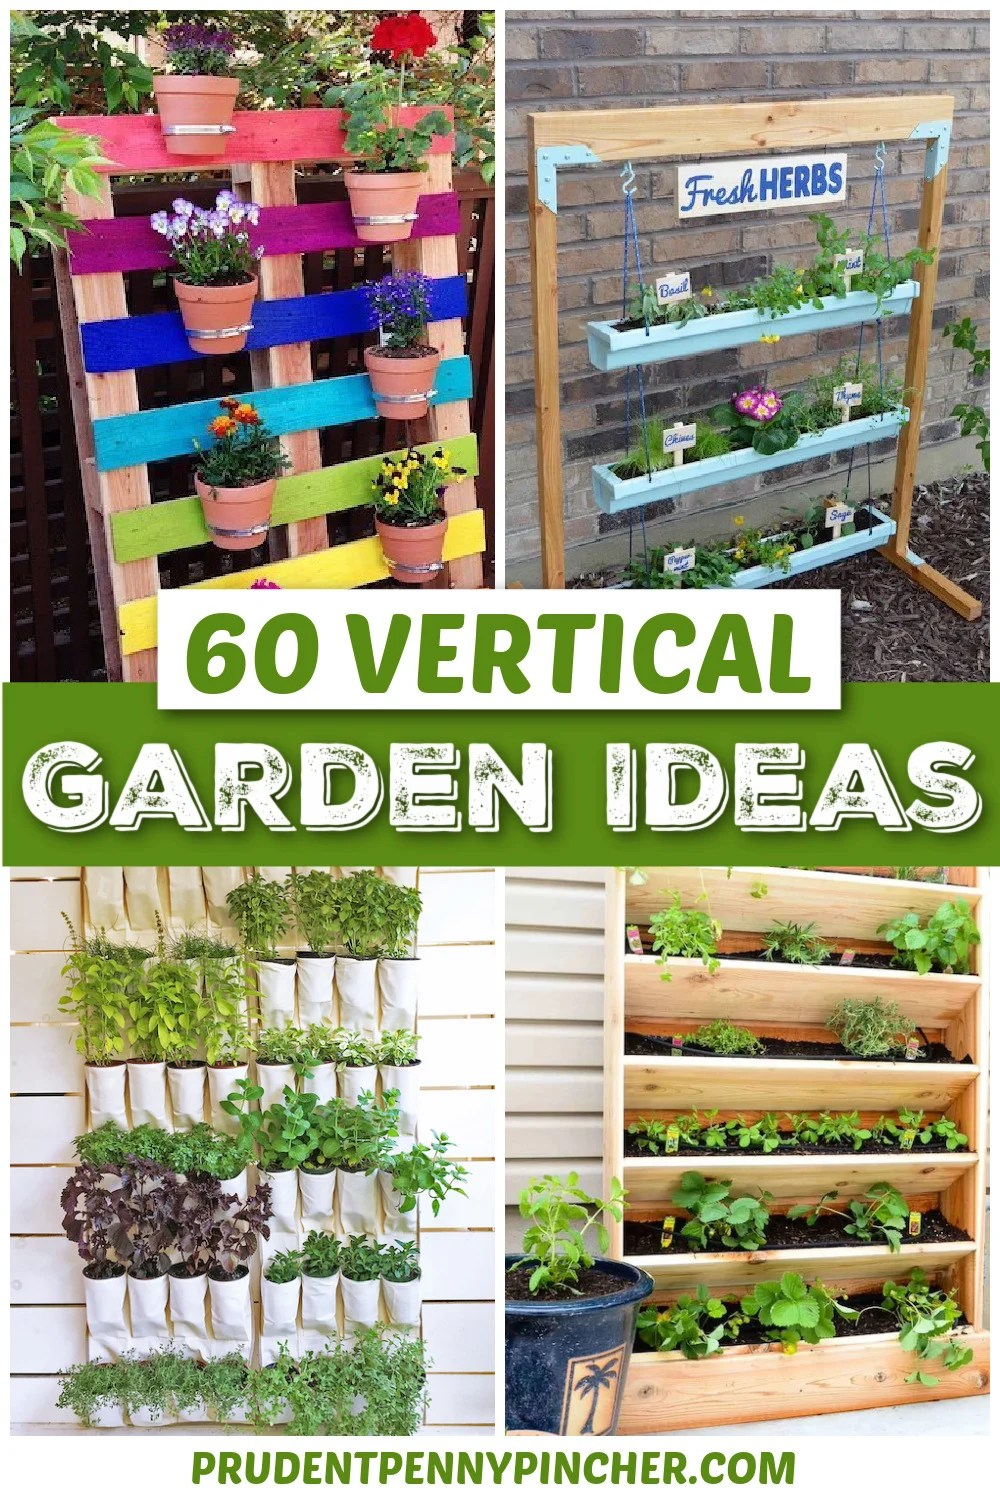 60 Diy Vertical Garden Ideas For Small Spaces Prudent Penny Pincher